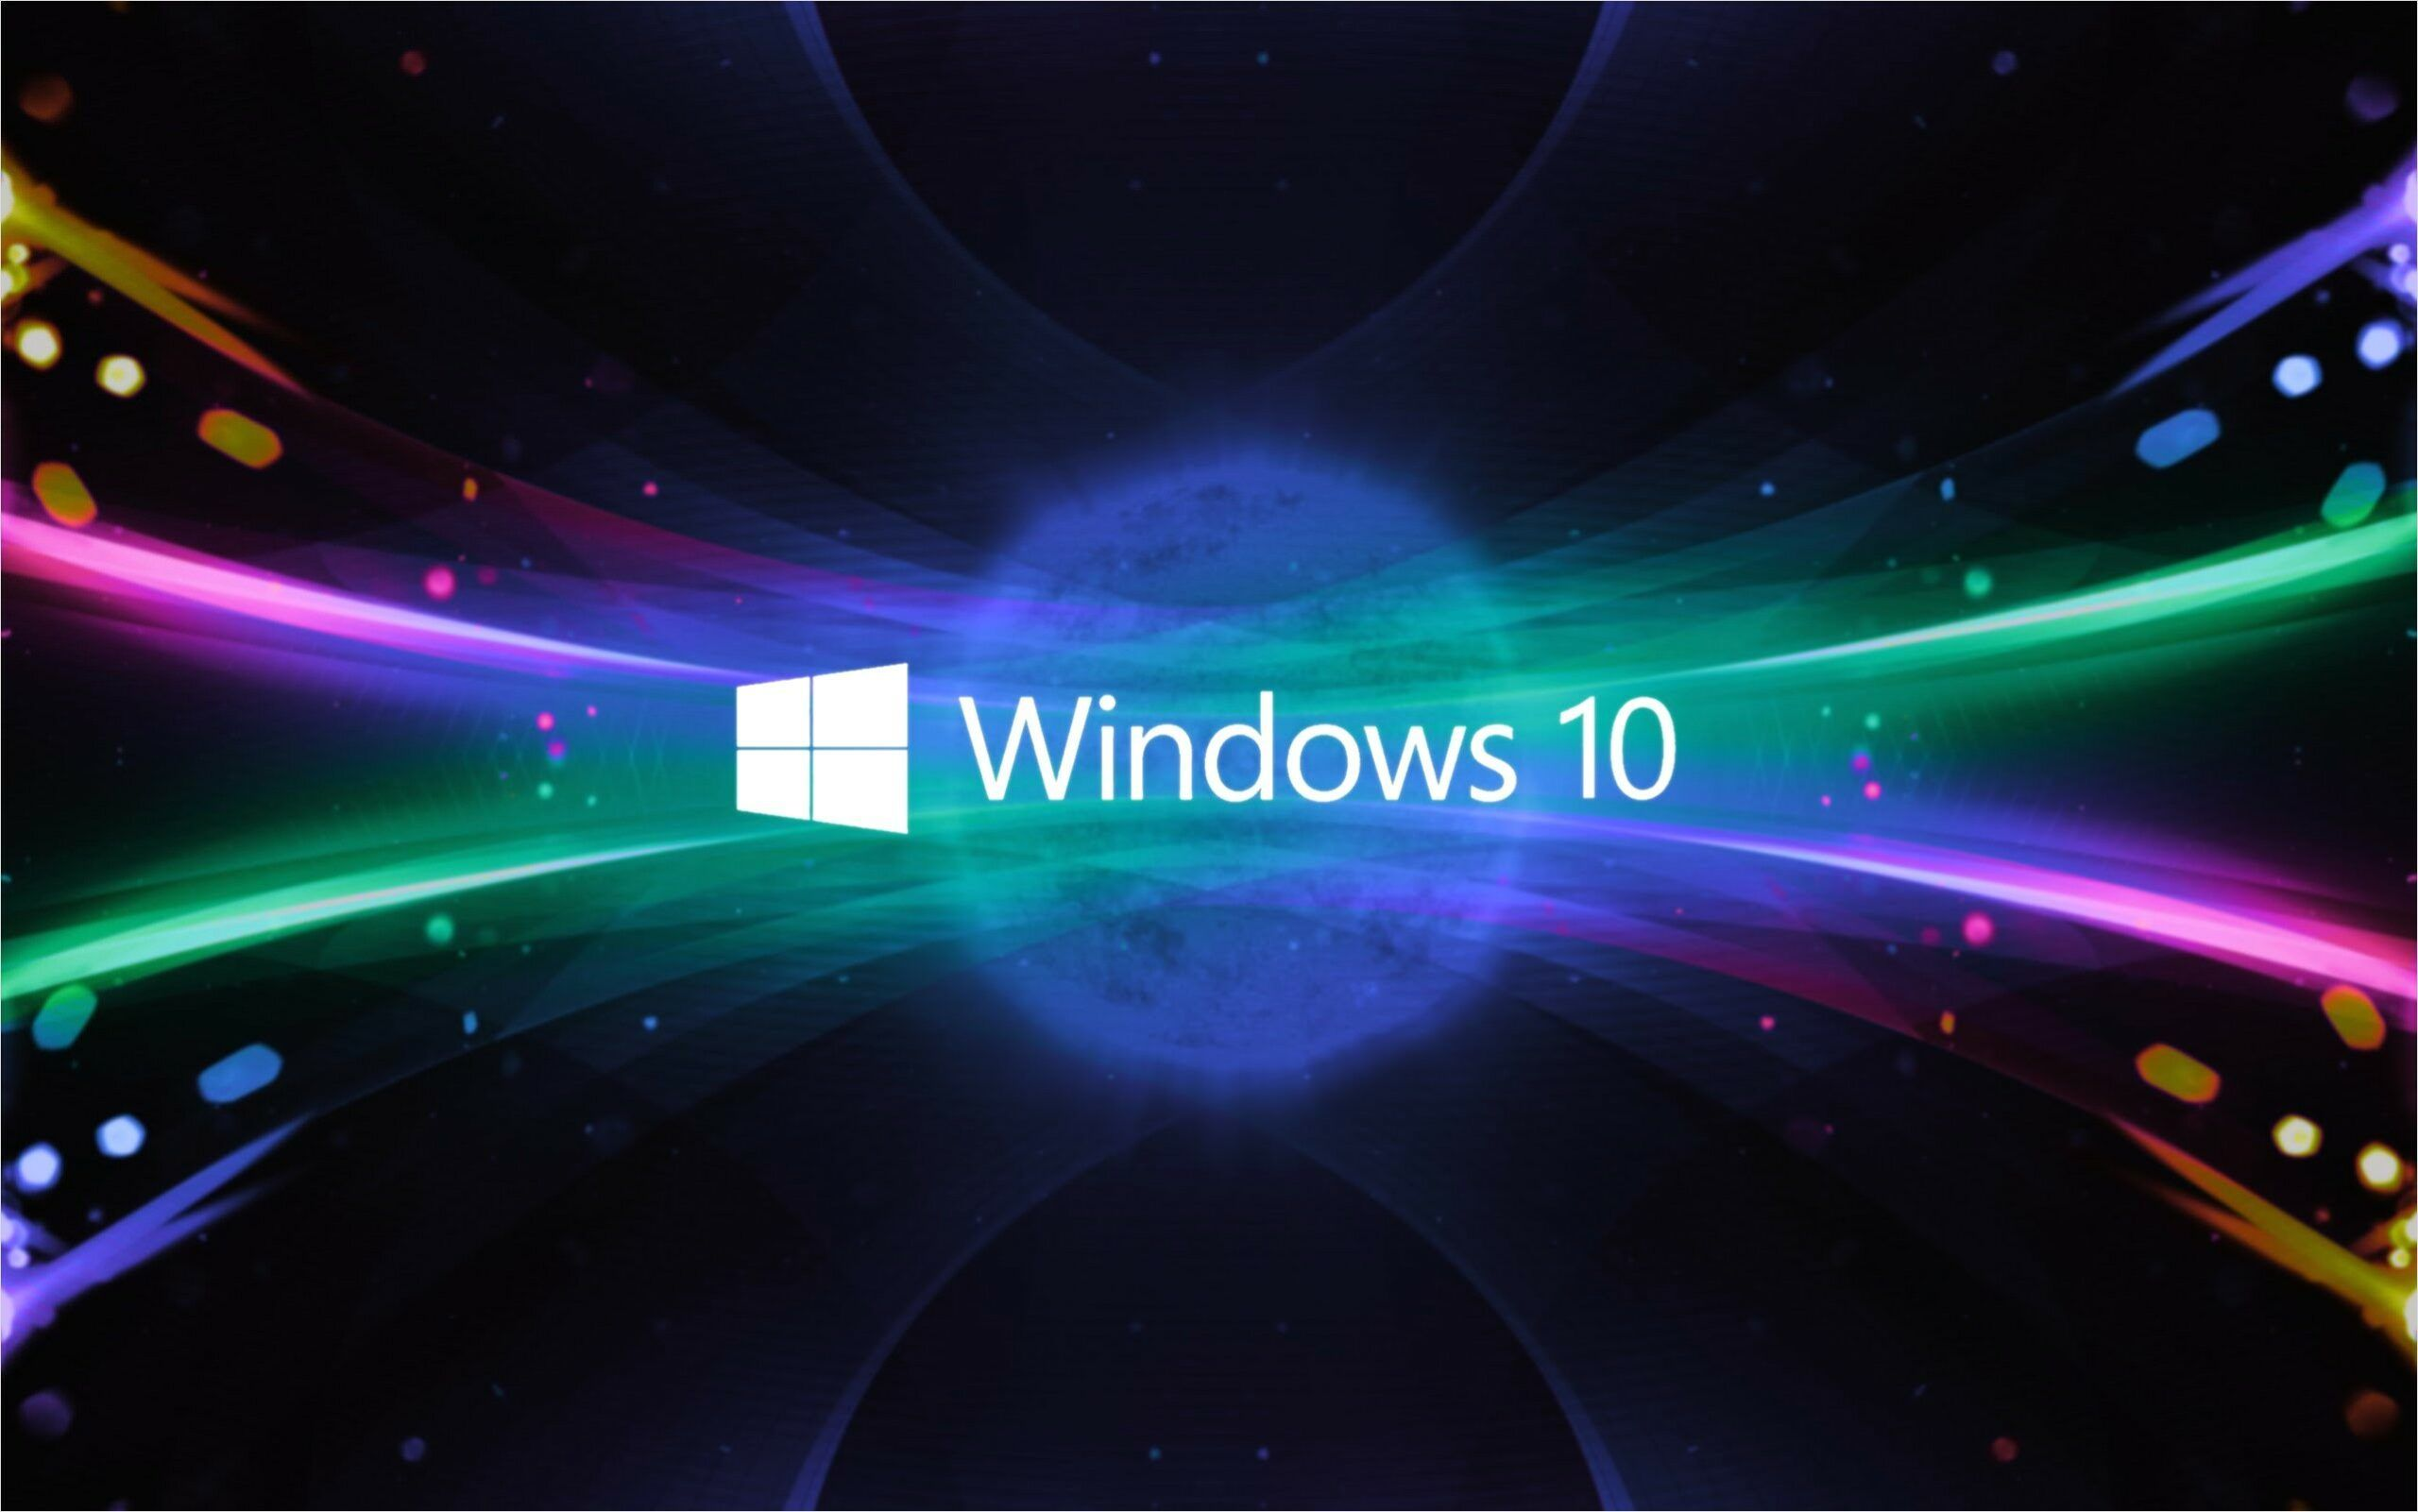 4k Animated Wallpaper Reddit Windows 10 Logo Wallpaper Windows 10 Windows 10